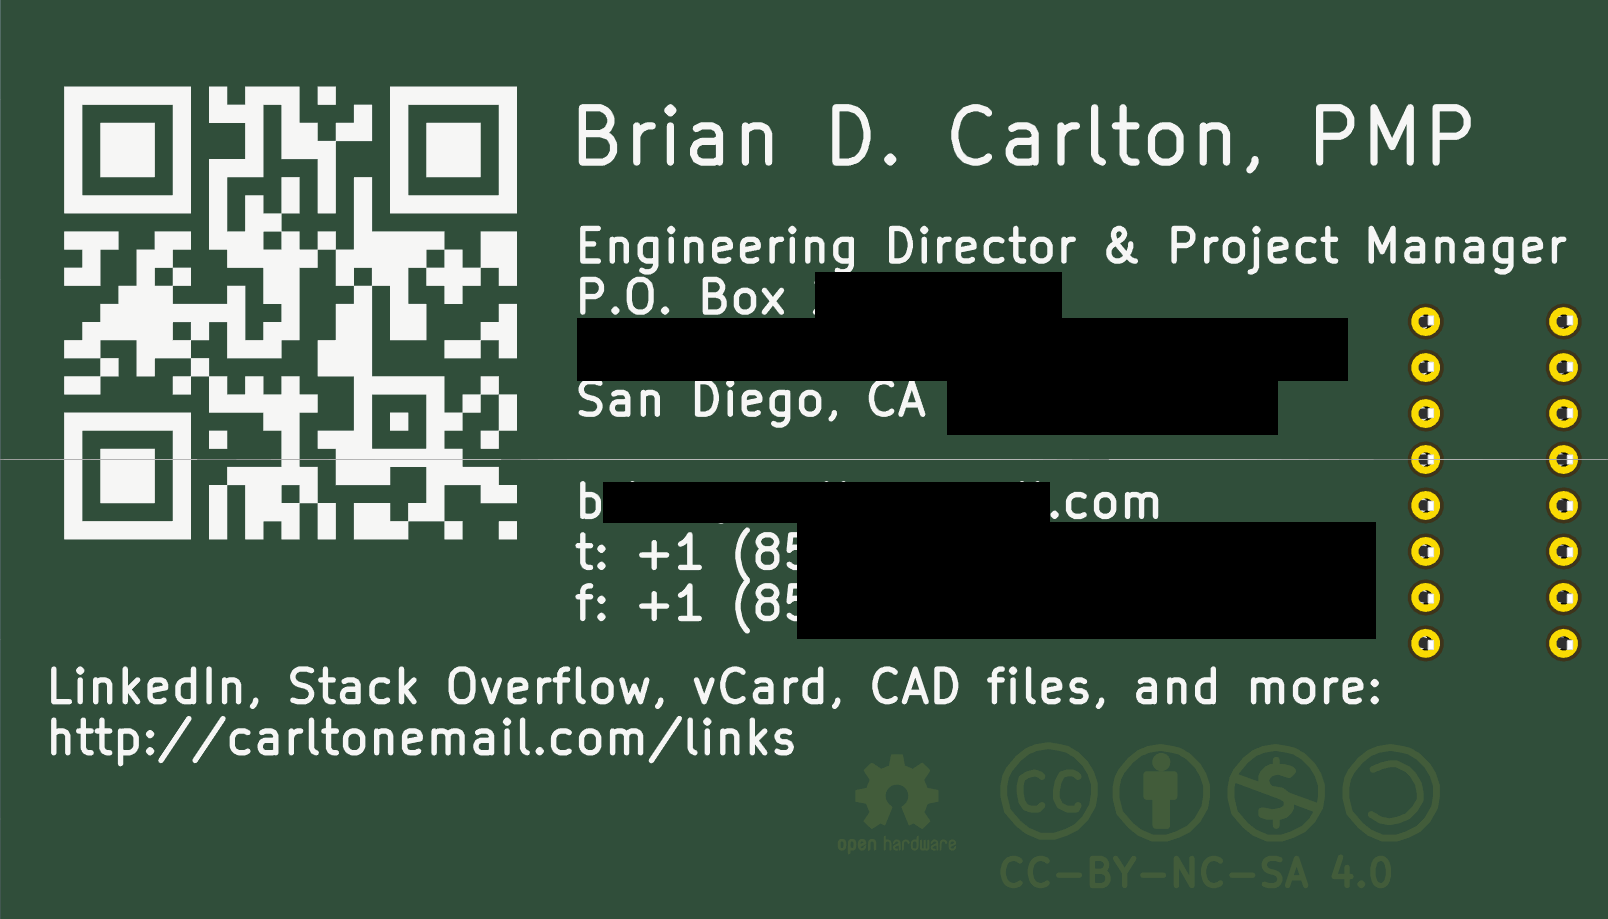 Github bdc0businesscard brian d carlton pcb business card image of front side of pcb httpsrawthubusercontentbdc0 businesscardmasterbriandcarltonbusinesscardfonthiddeng colourmoves